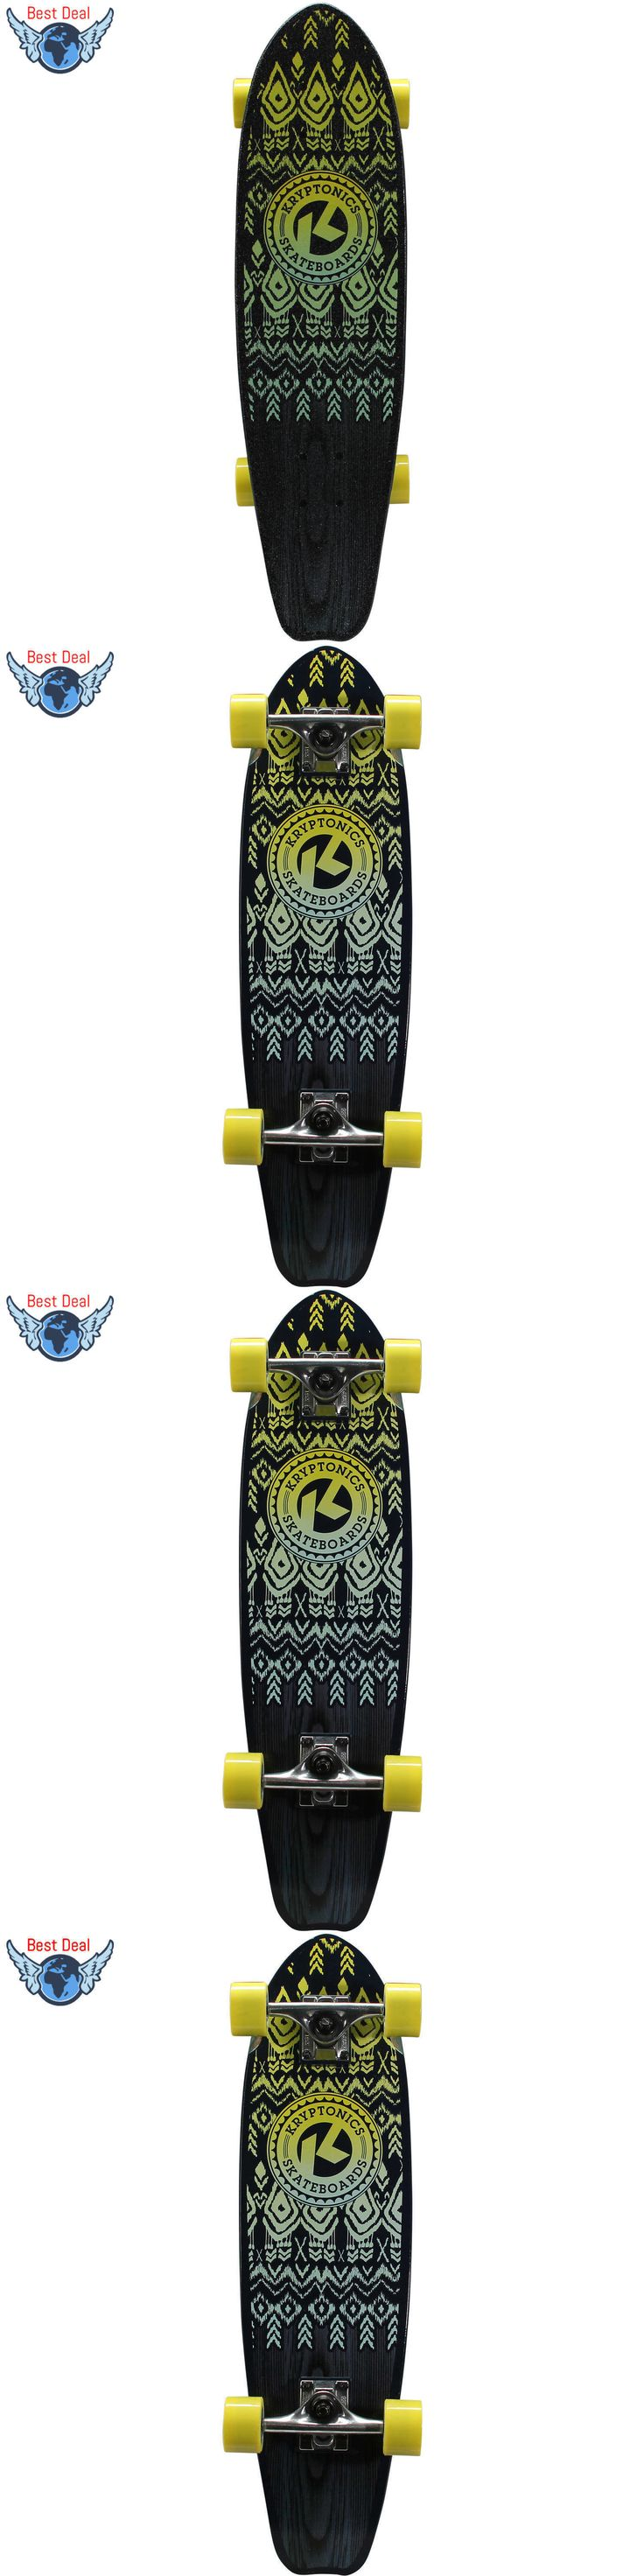 Skateboards-Complete 16264: Kryptonics 28 Complete Cruiser Skateboard, 28 X 7.5 Top Quality -> BUY IT NOW ONLY: $39.99 on eBay!